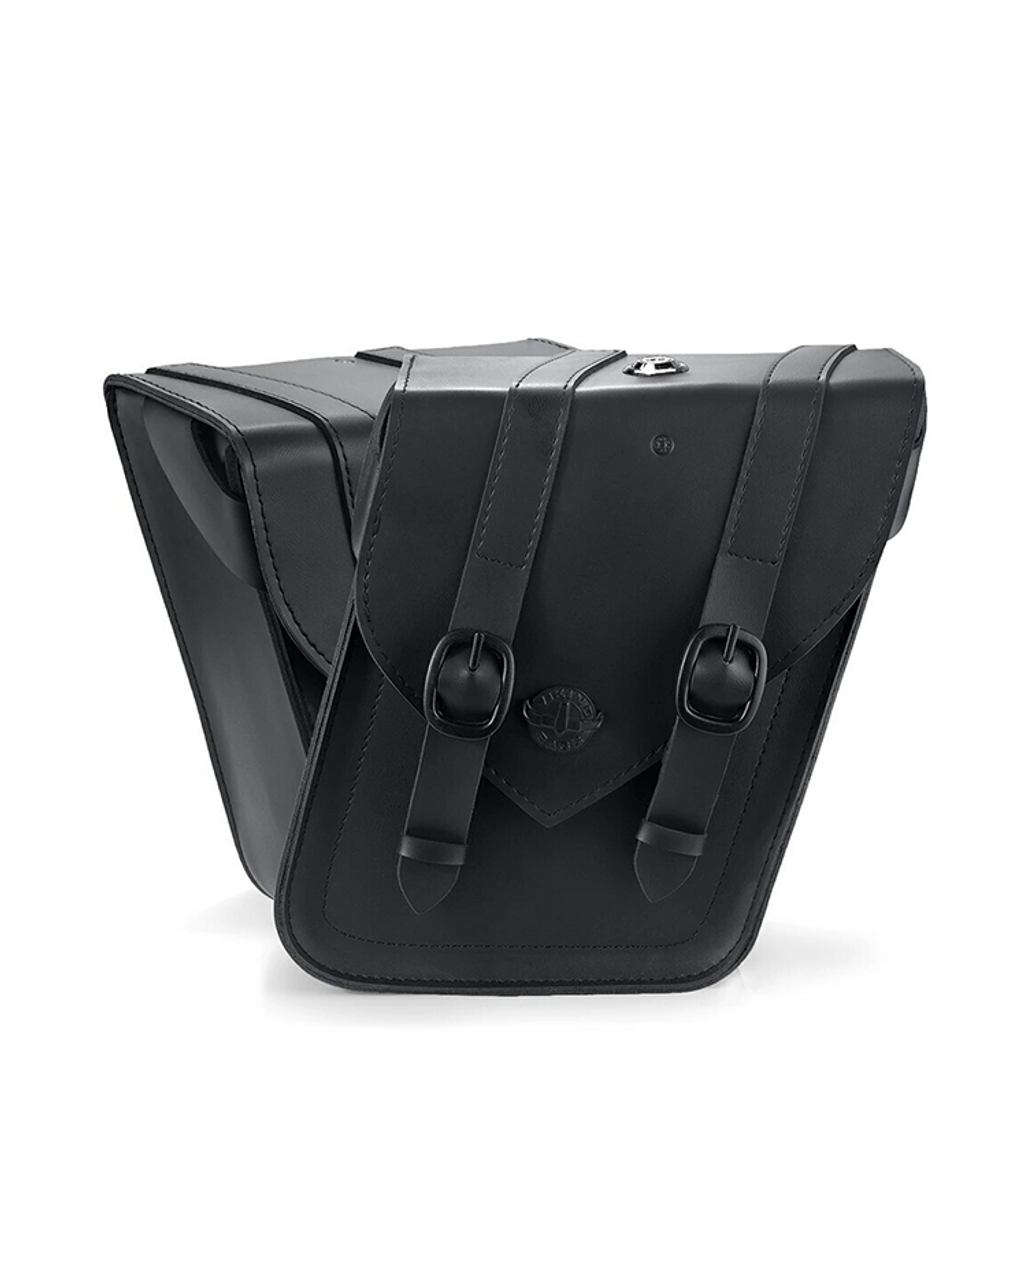 Viking Dark Age Compact Strapped Leather Motorcycle Saddlebags For Sportster Seventy Two Both bag view